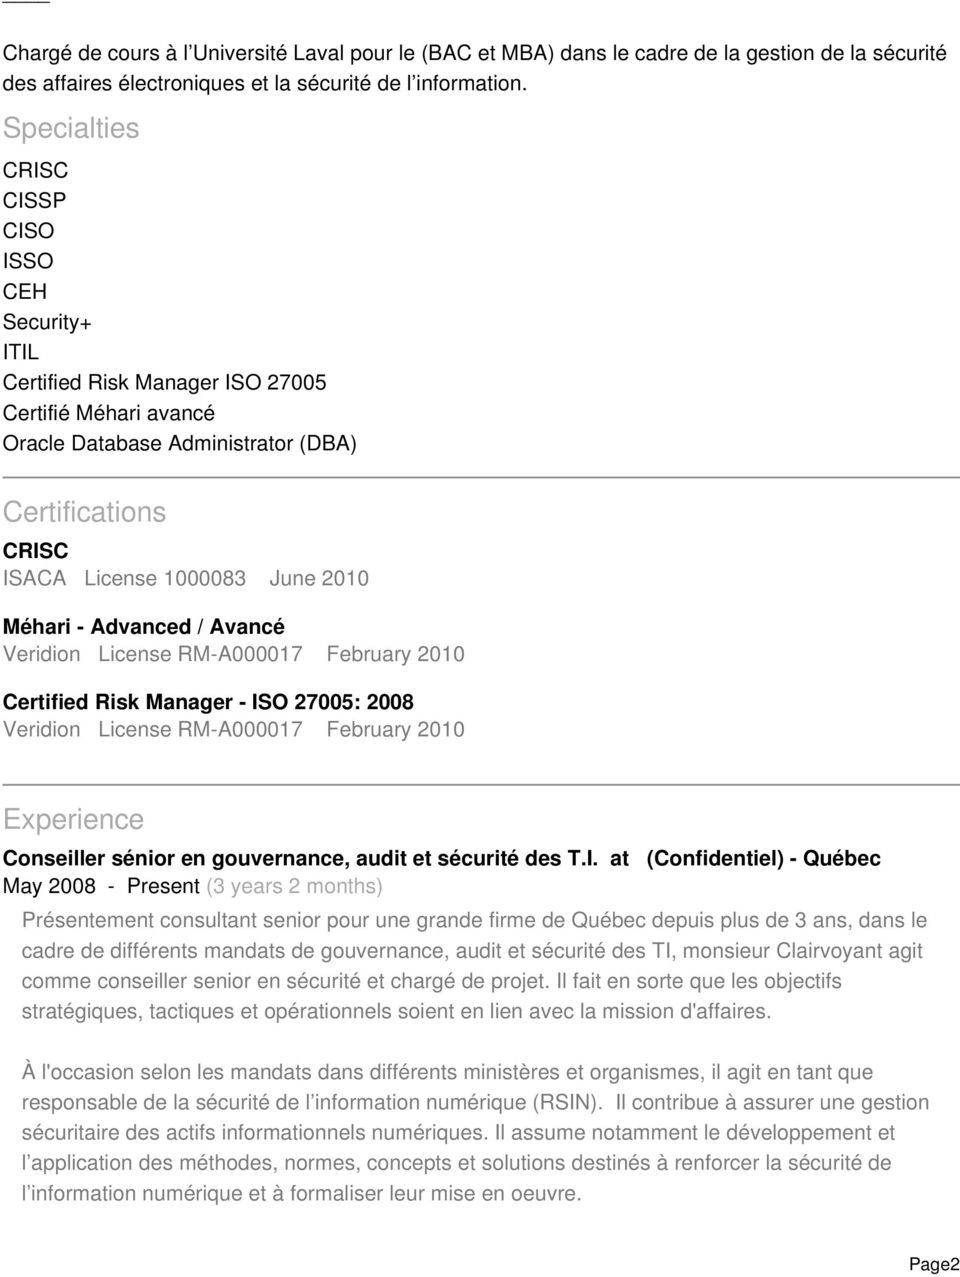 Méhari - Advanced / Avancé Veridion License RM-A000017 February 2010 Certified Risk Manager - ISO 27005: 2008 Veridion License RM-A000017 February 2010 Experience Conseiller sénior en gouvernance,